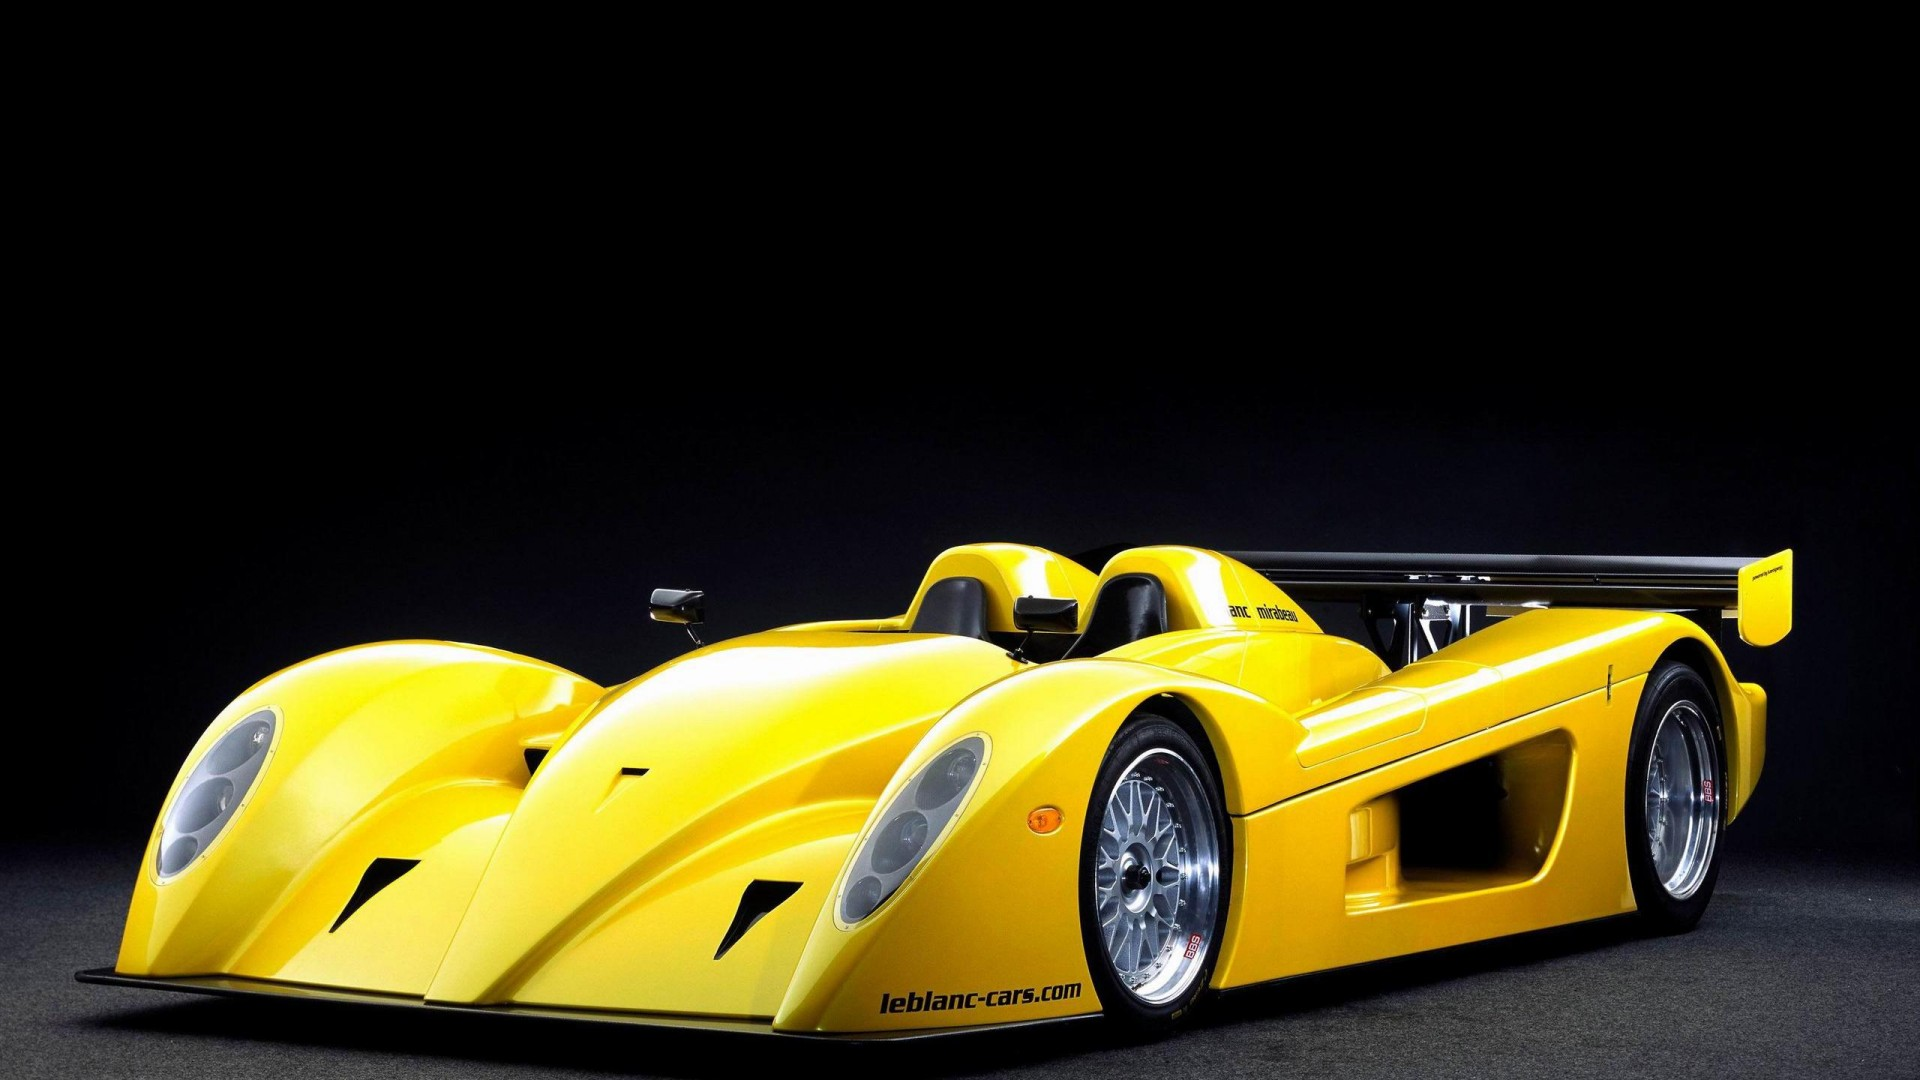 vehicle yellow sports car - photo #33